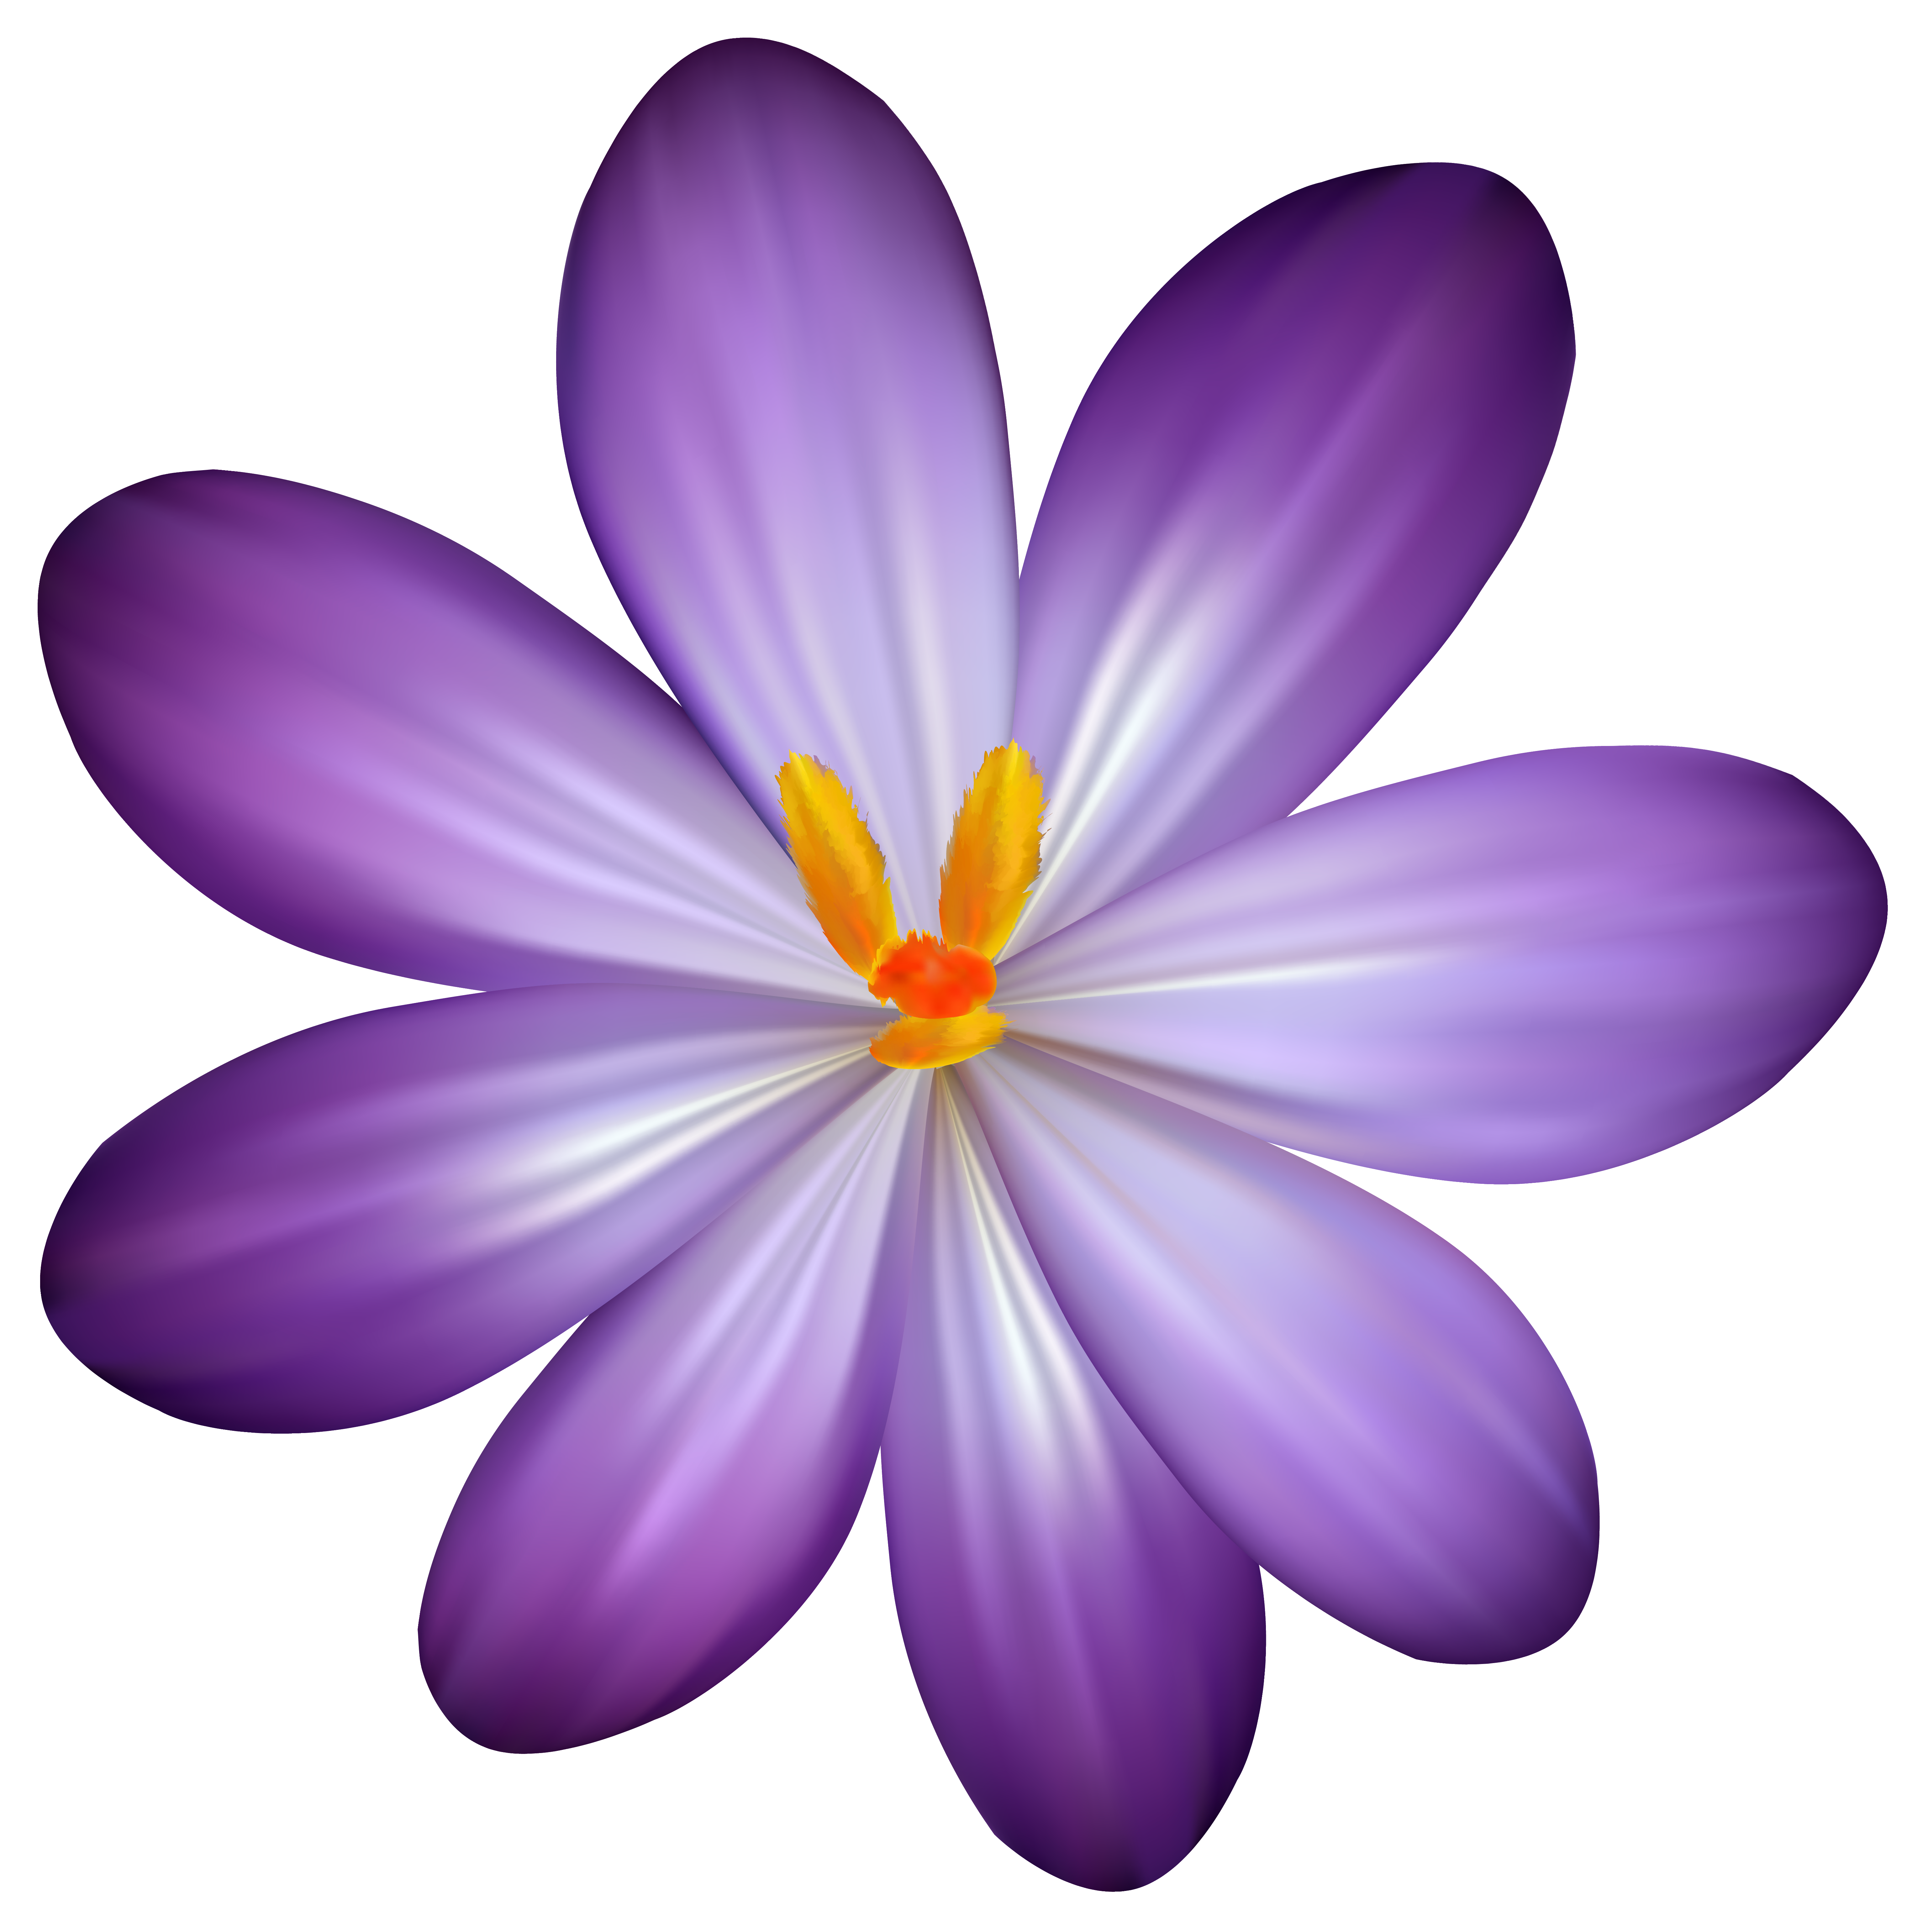 Flower clipart purple svg royalty free stock Purple Crocus Flower PNG Clipart Image svg royalty free stock